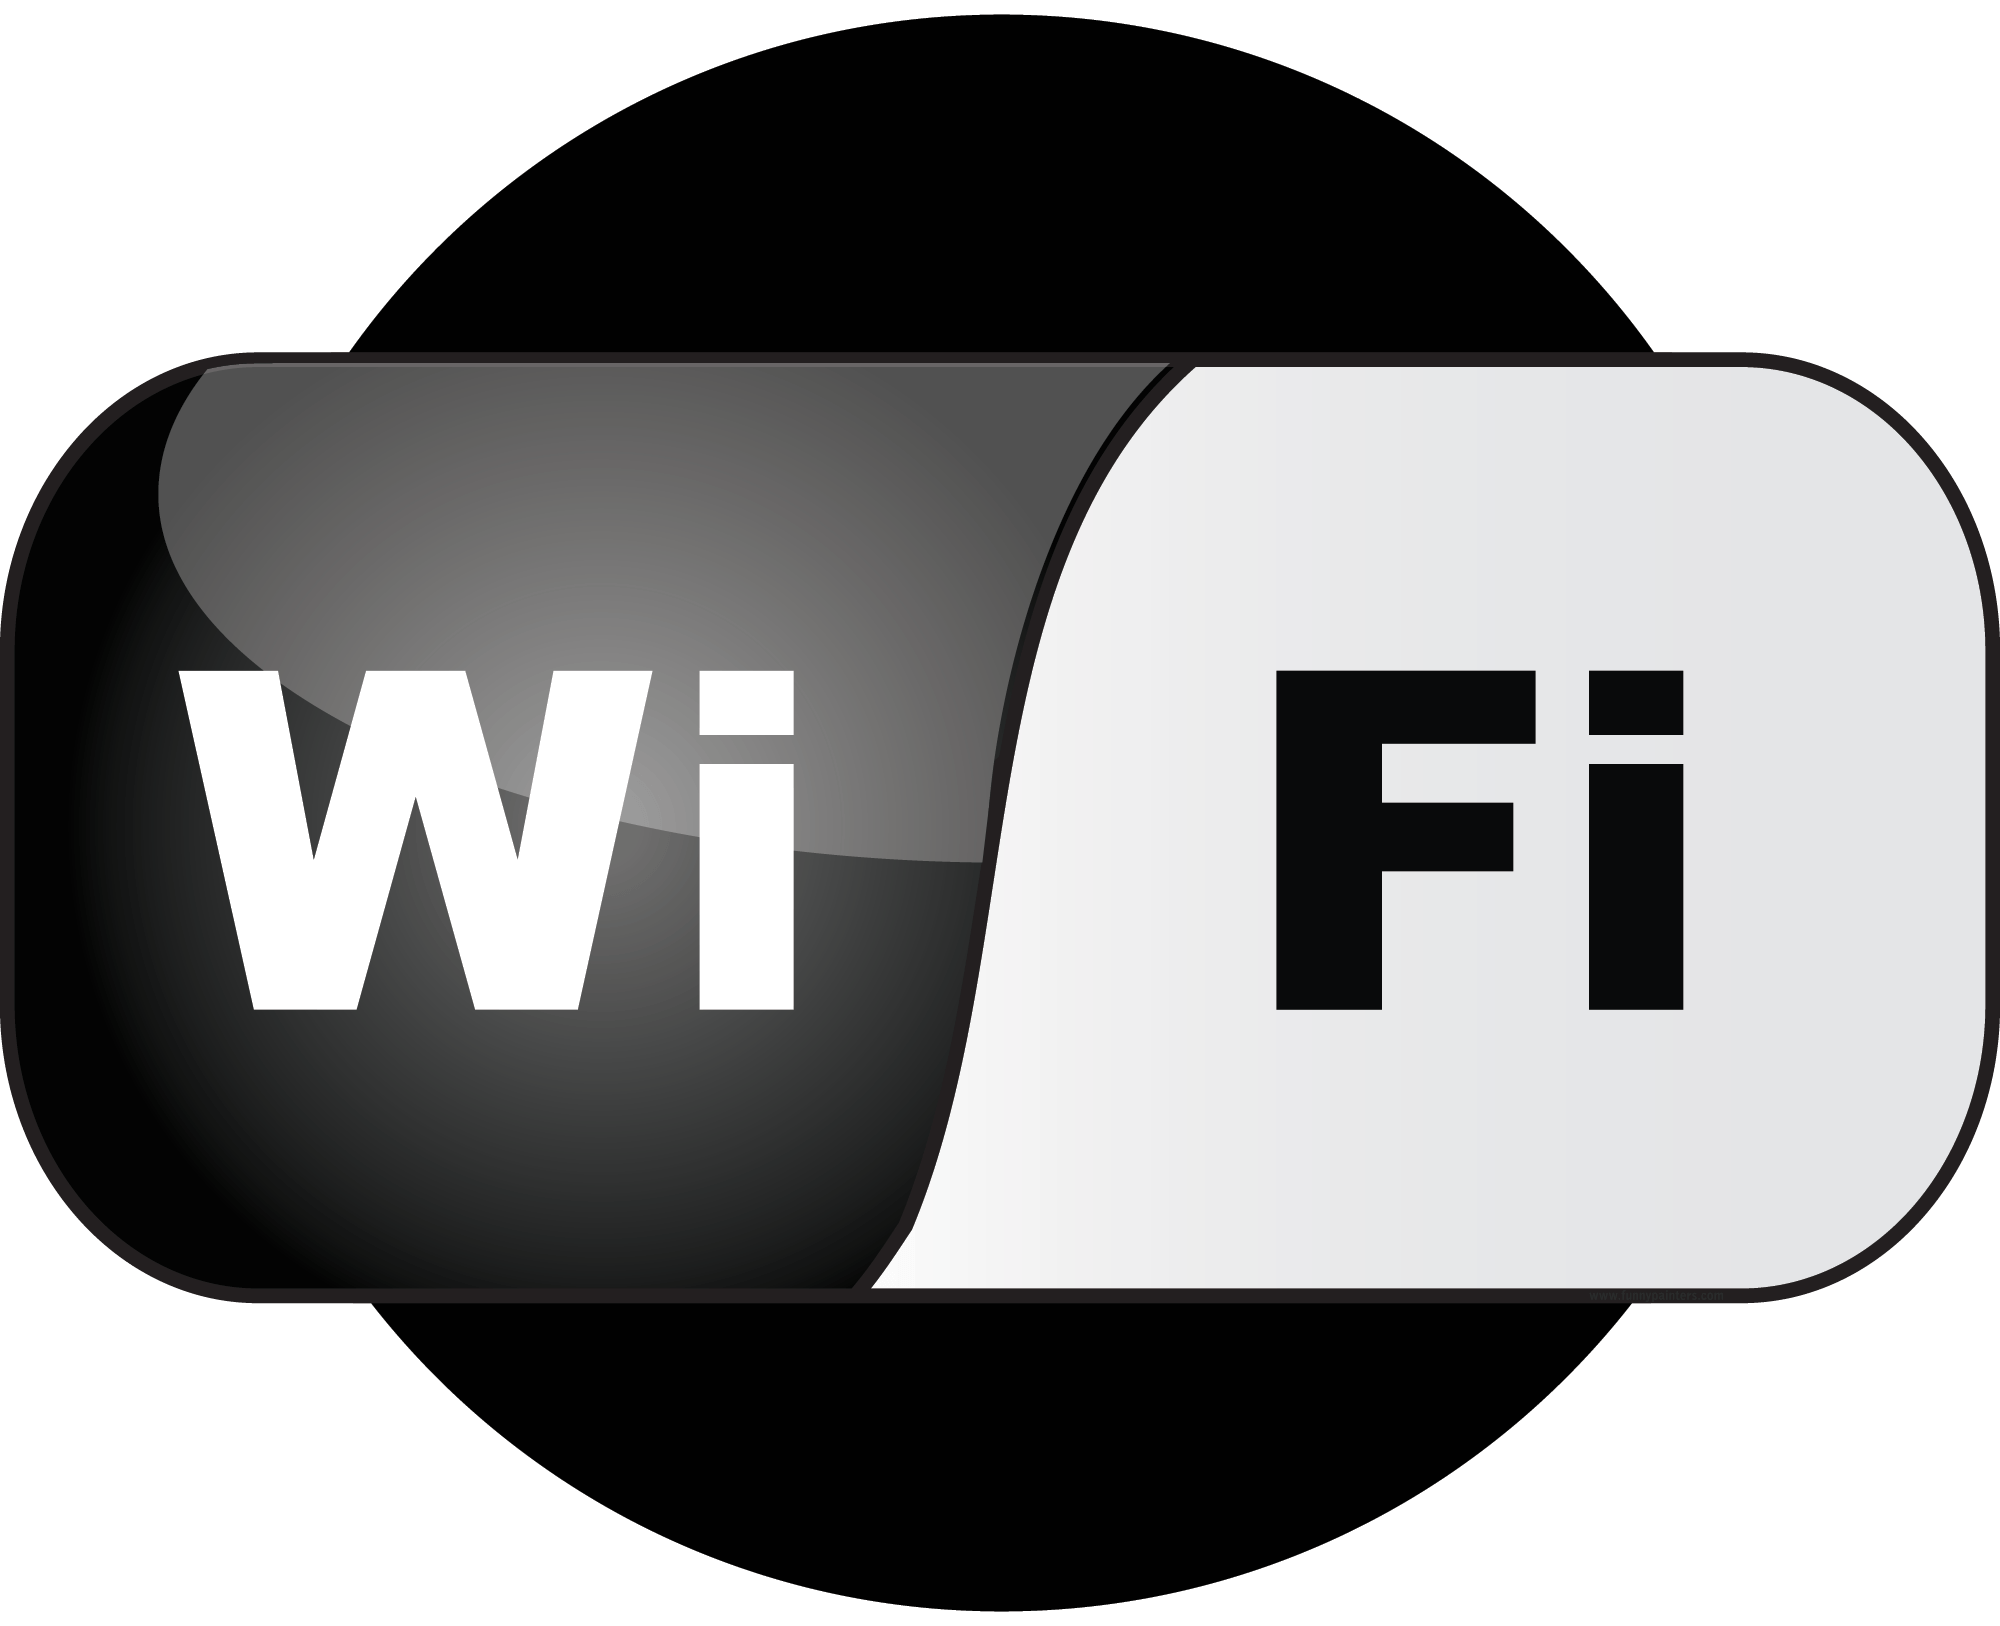 Wifi Logo - Wifi Icon PNG Image - PurePNG | Free transparent CC0 PNG Image Library